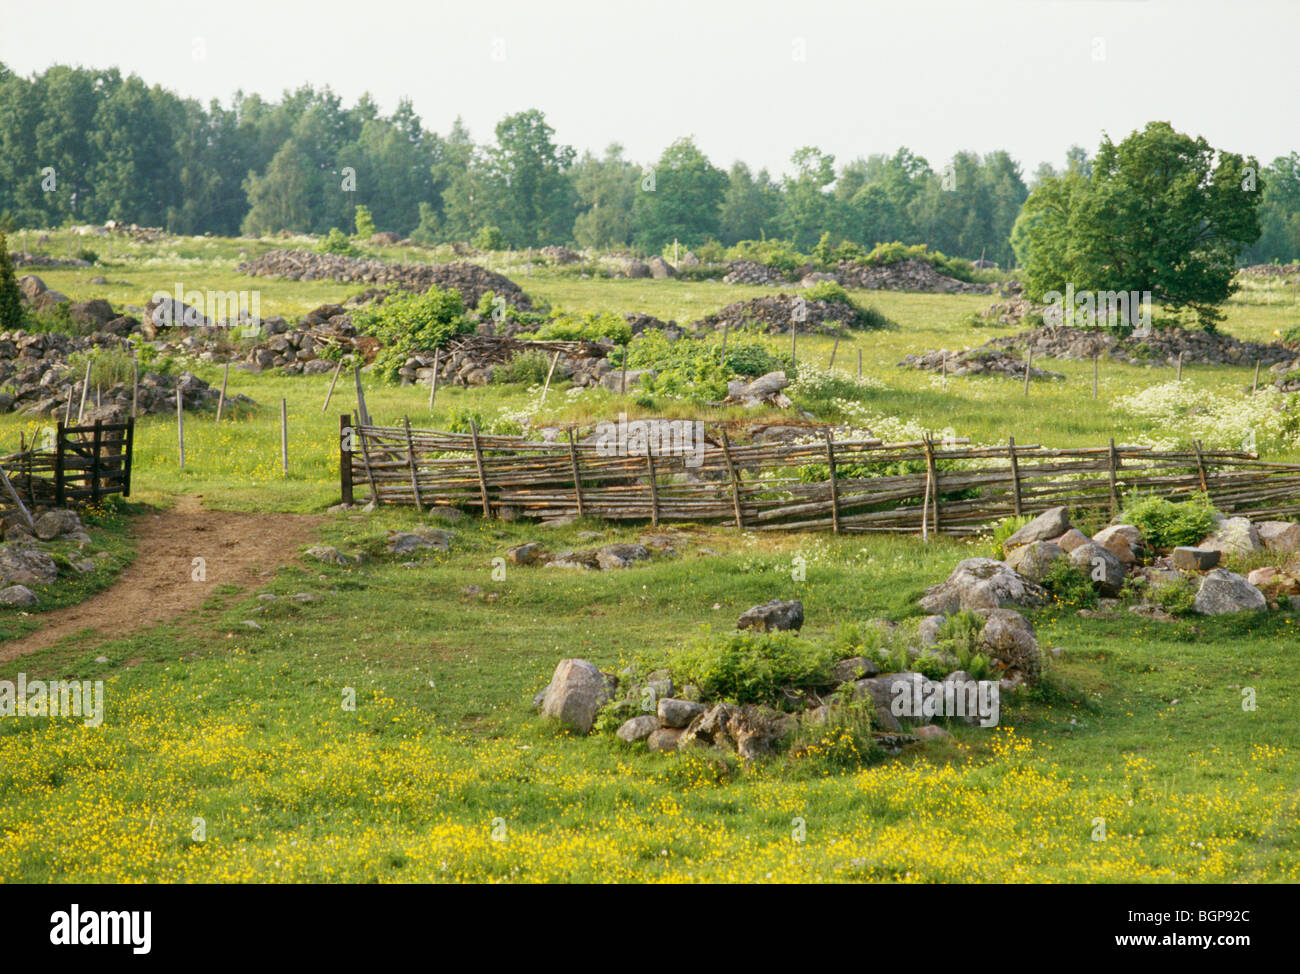 Mound of stones and pastureland, Smaland, Sweden. Stock Photo